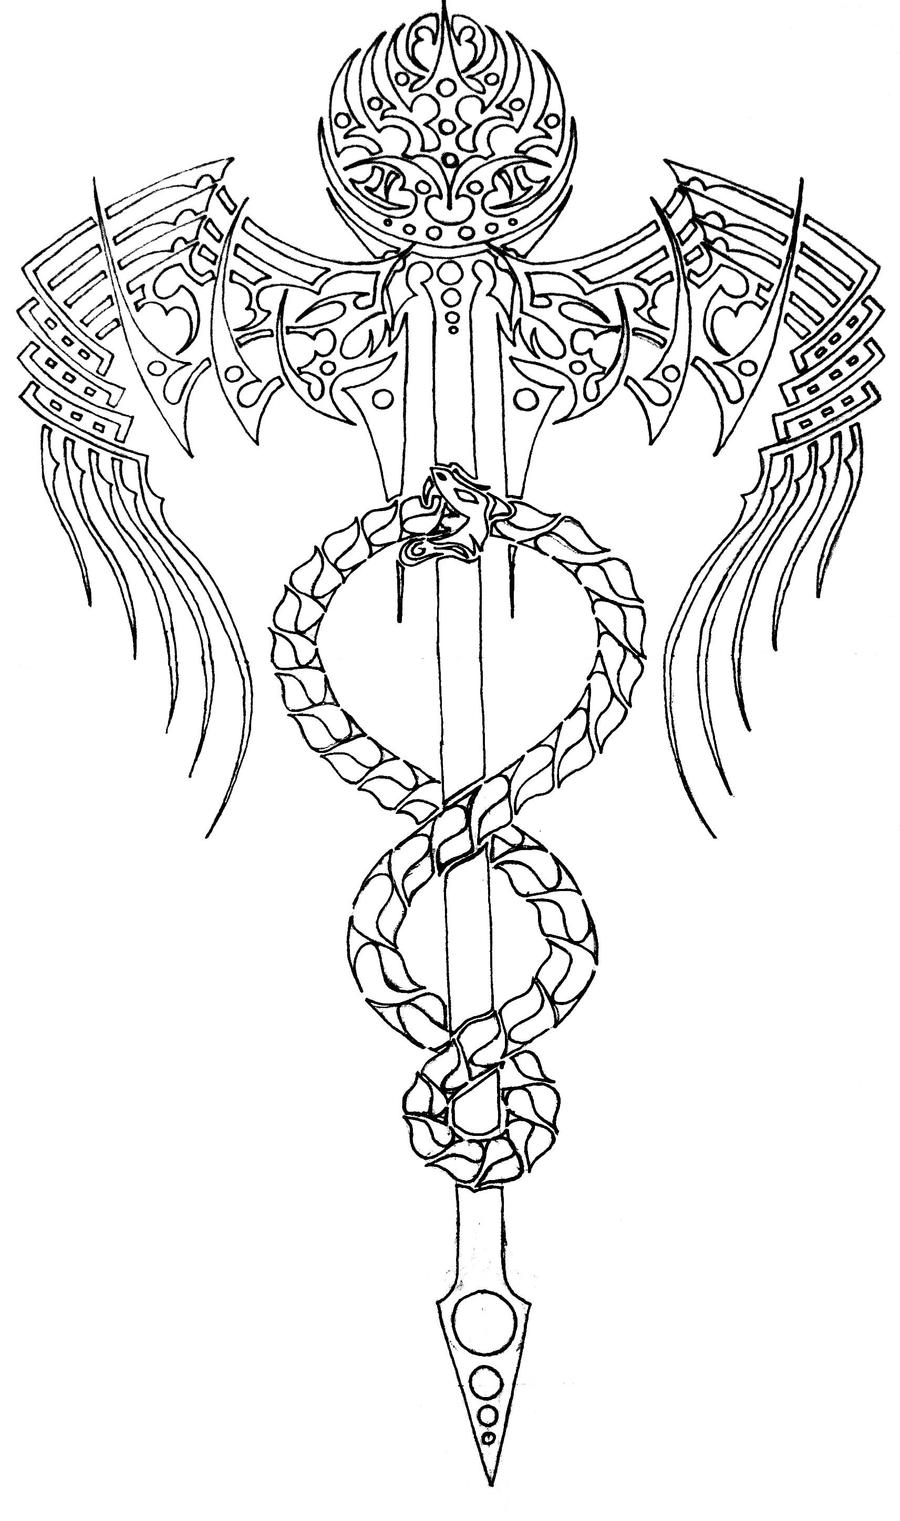 Tribal Staff of Hermes Outline by thecrimsonseas on DeviantArt - photo#2